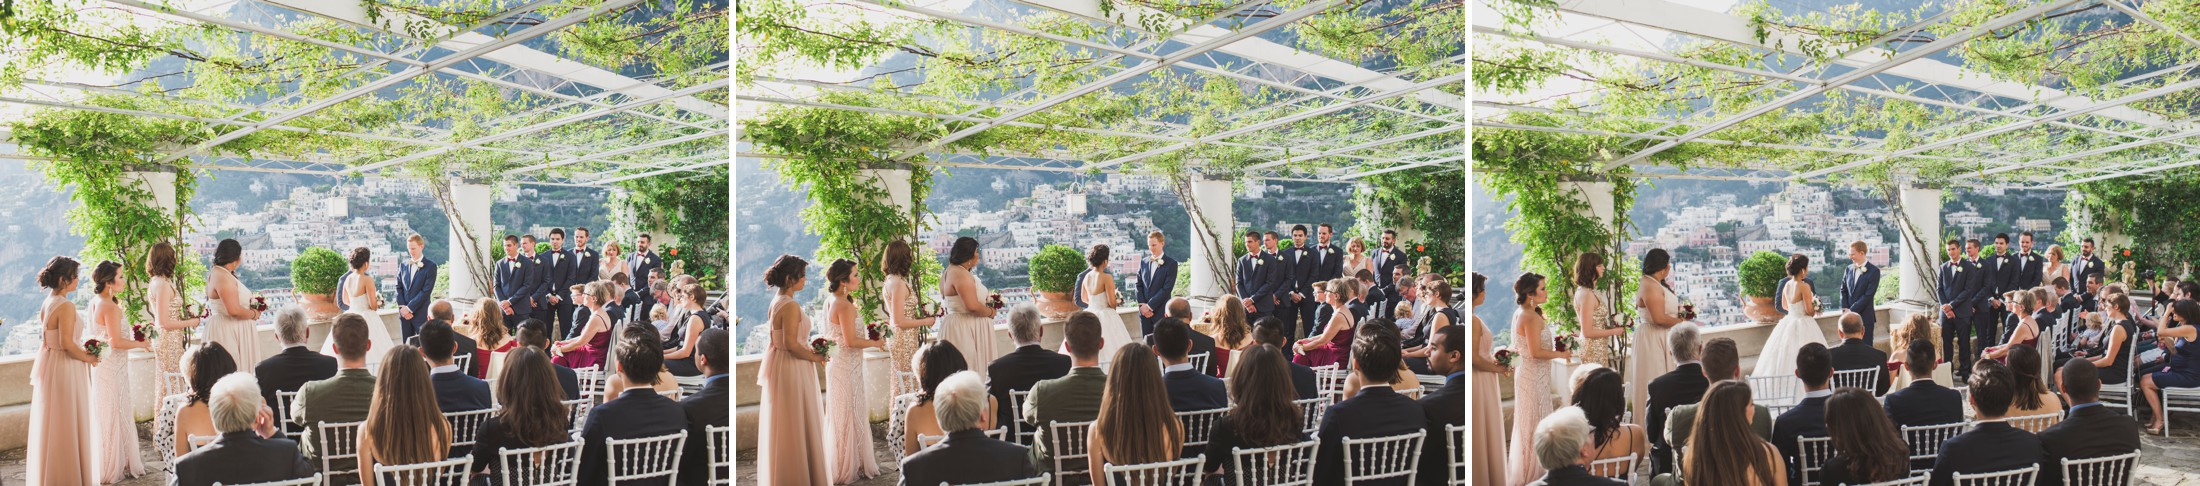 positano wedding collage wedding ceremony